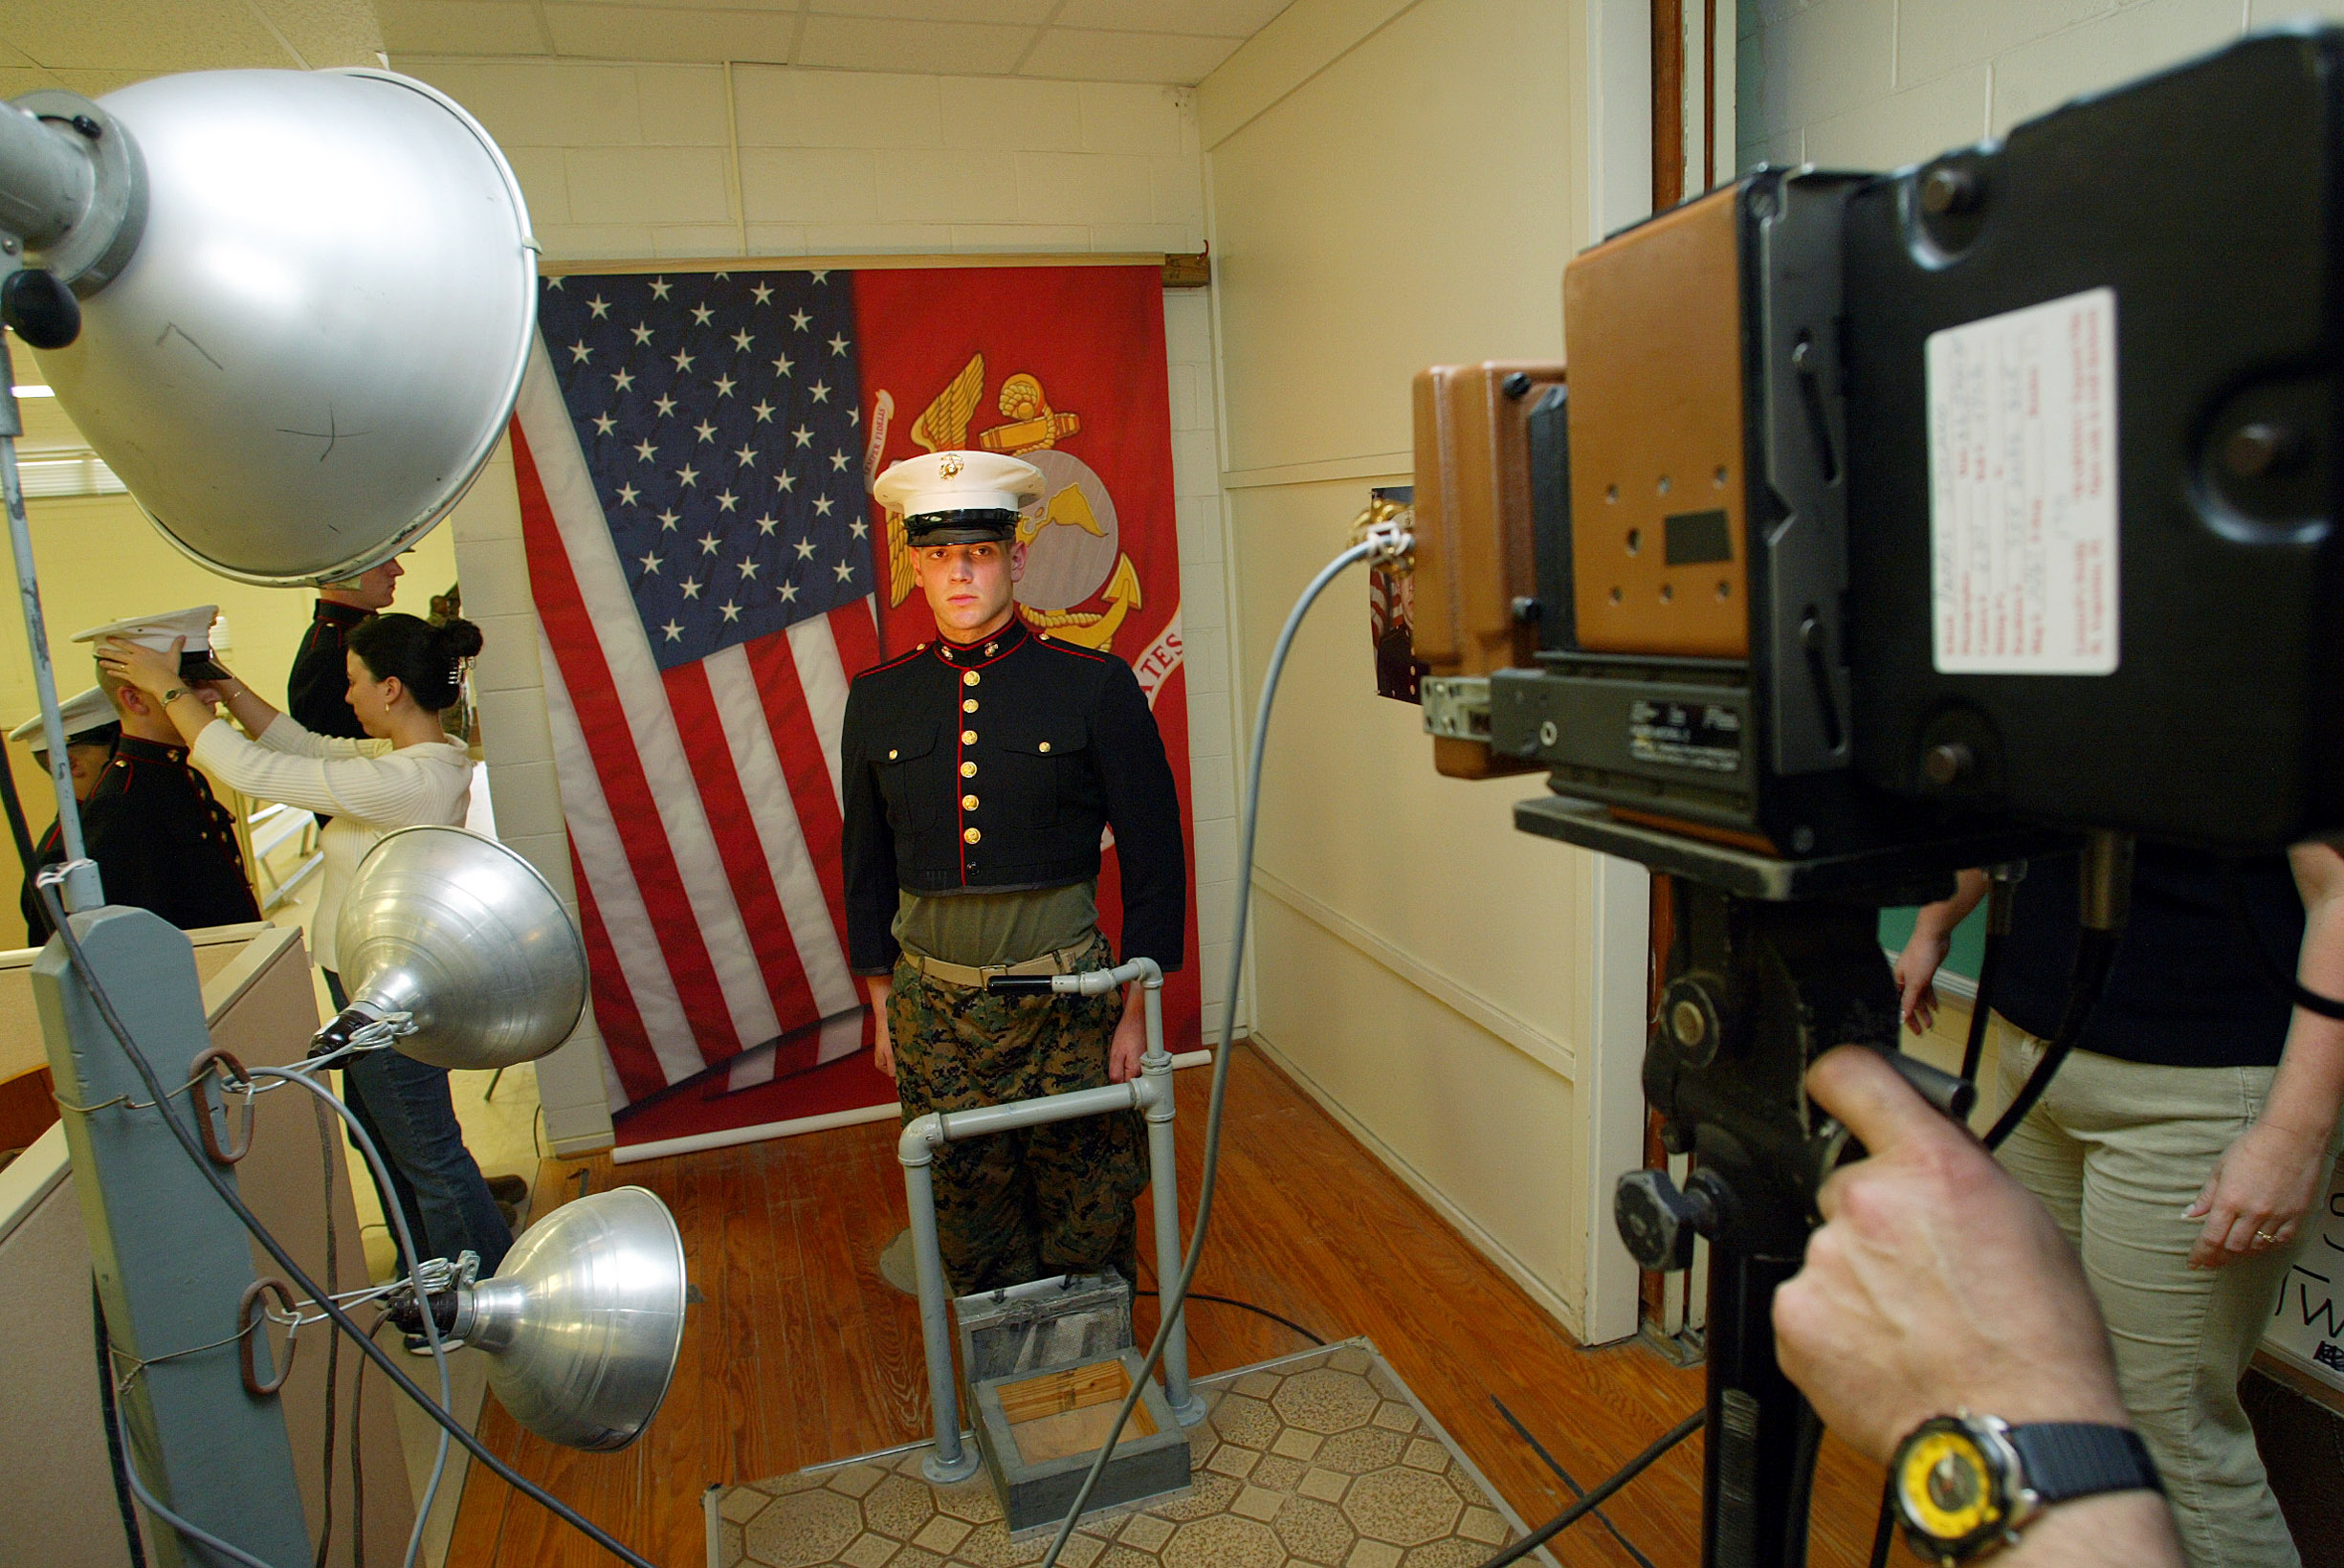 the citizen ier moral risk and the modern military reuters a marine corps recruit poses for his file photo at parris island south carolina 6 2005 reuters